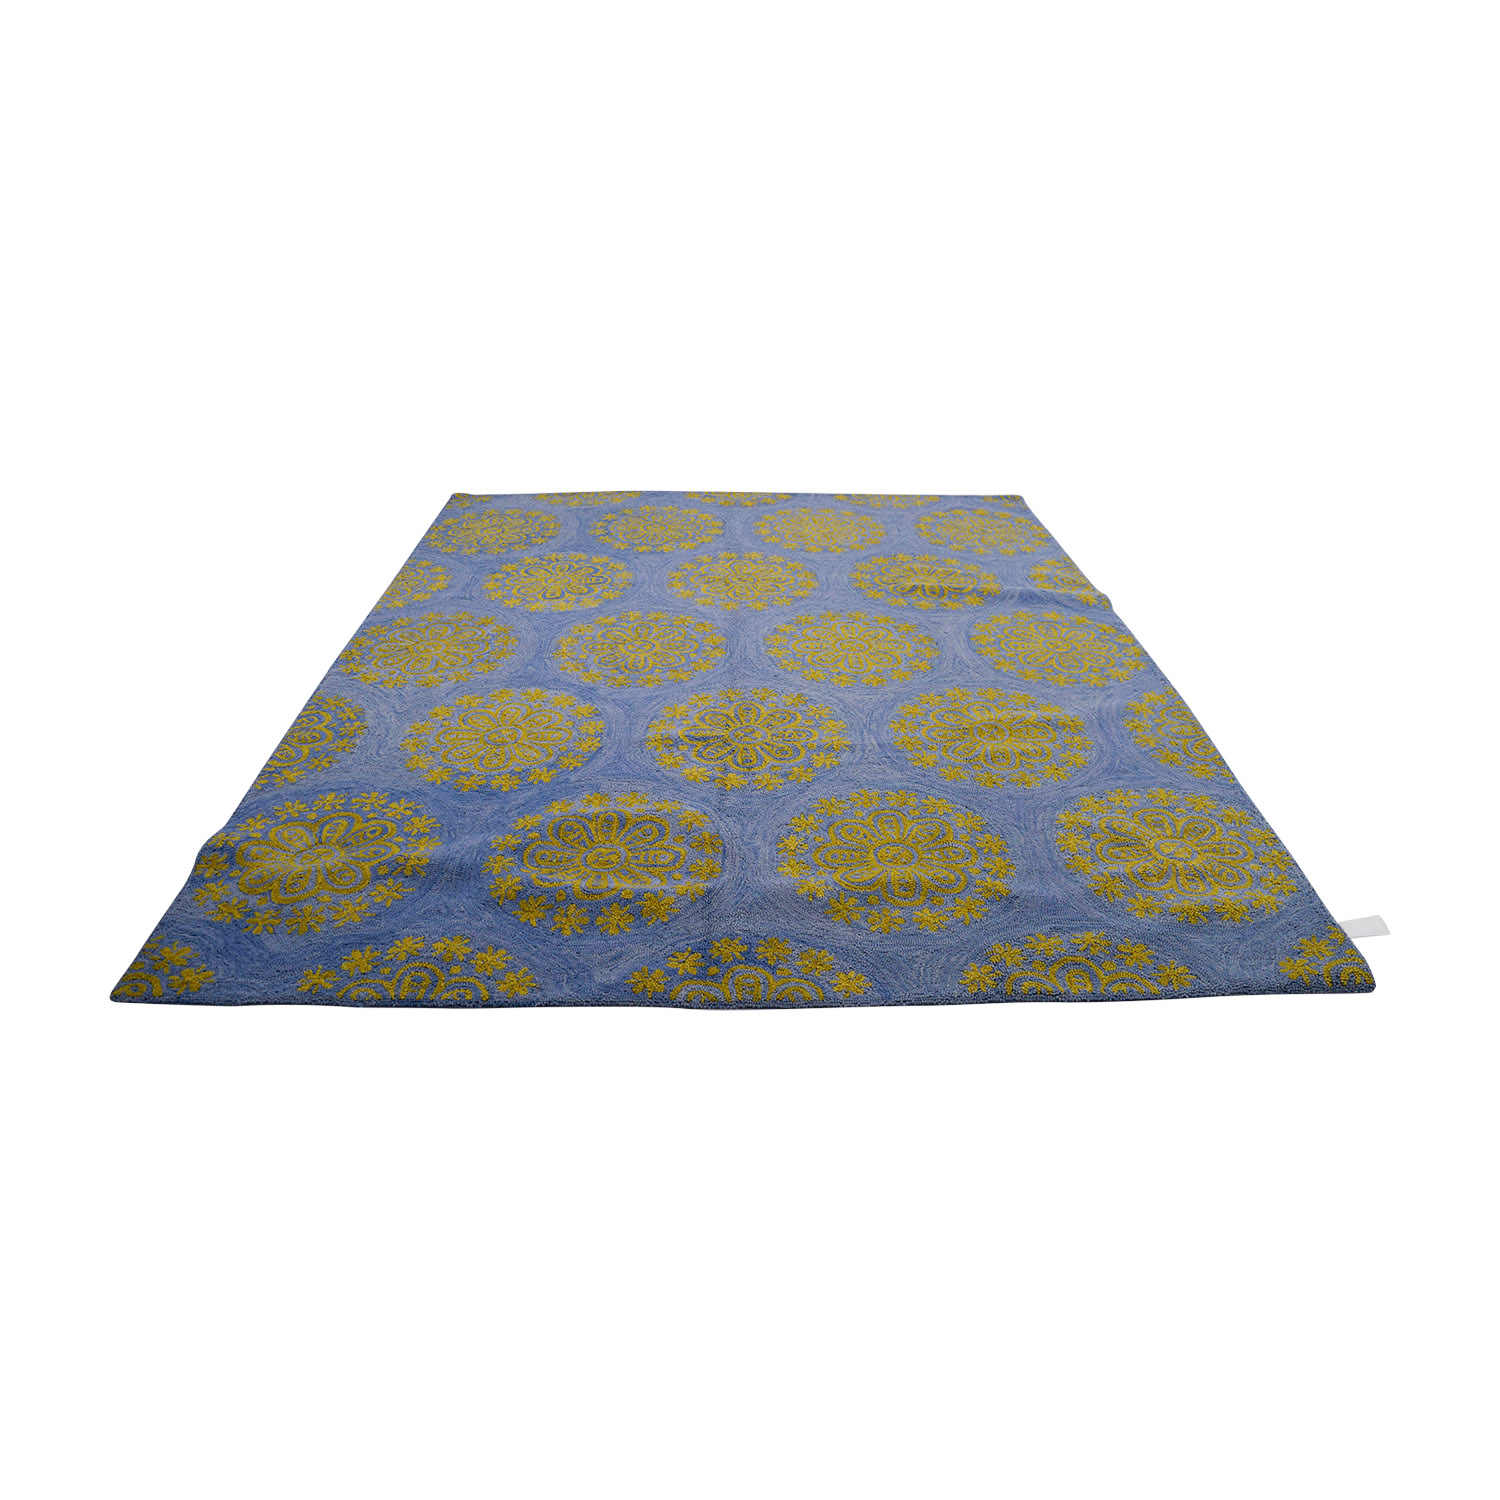 Obeetee Hand Hooked Blue and Yellow Medallion Rug / Rugs